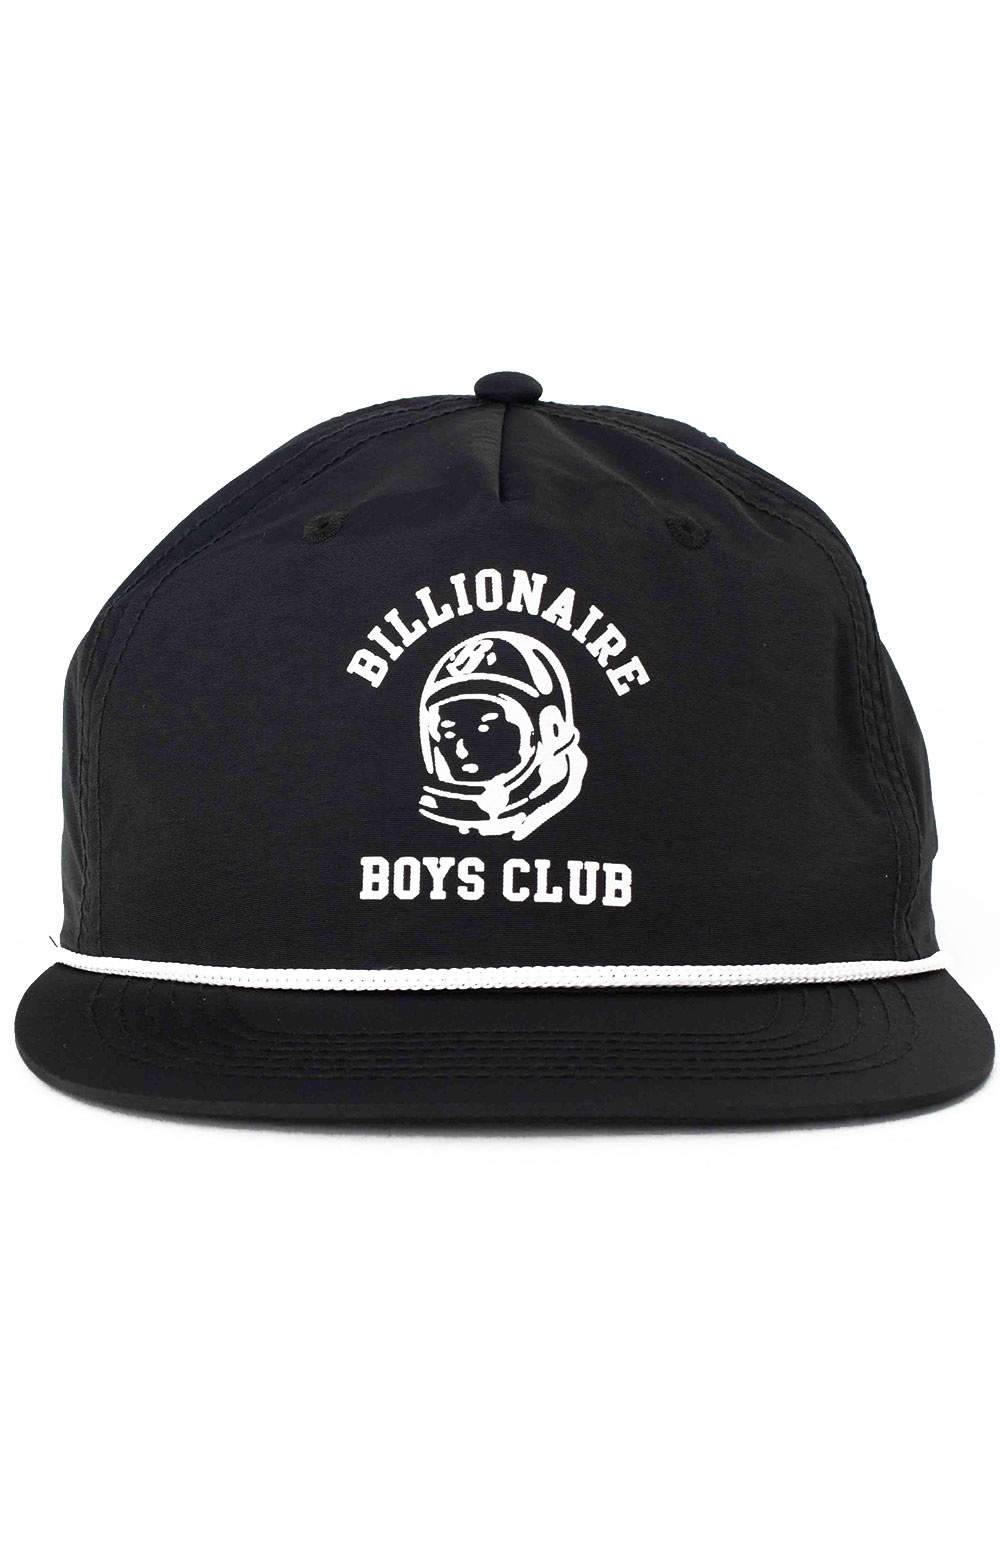 Clubhouse Snap-Back Hat - Black  3